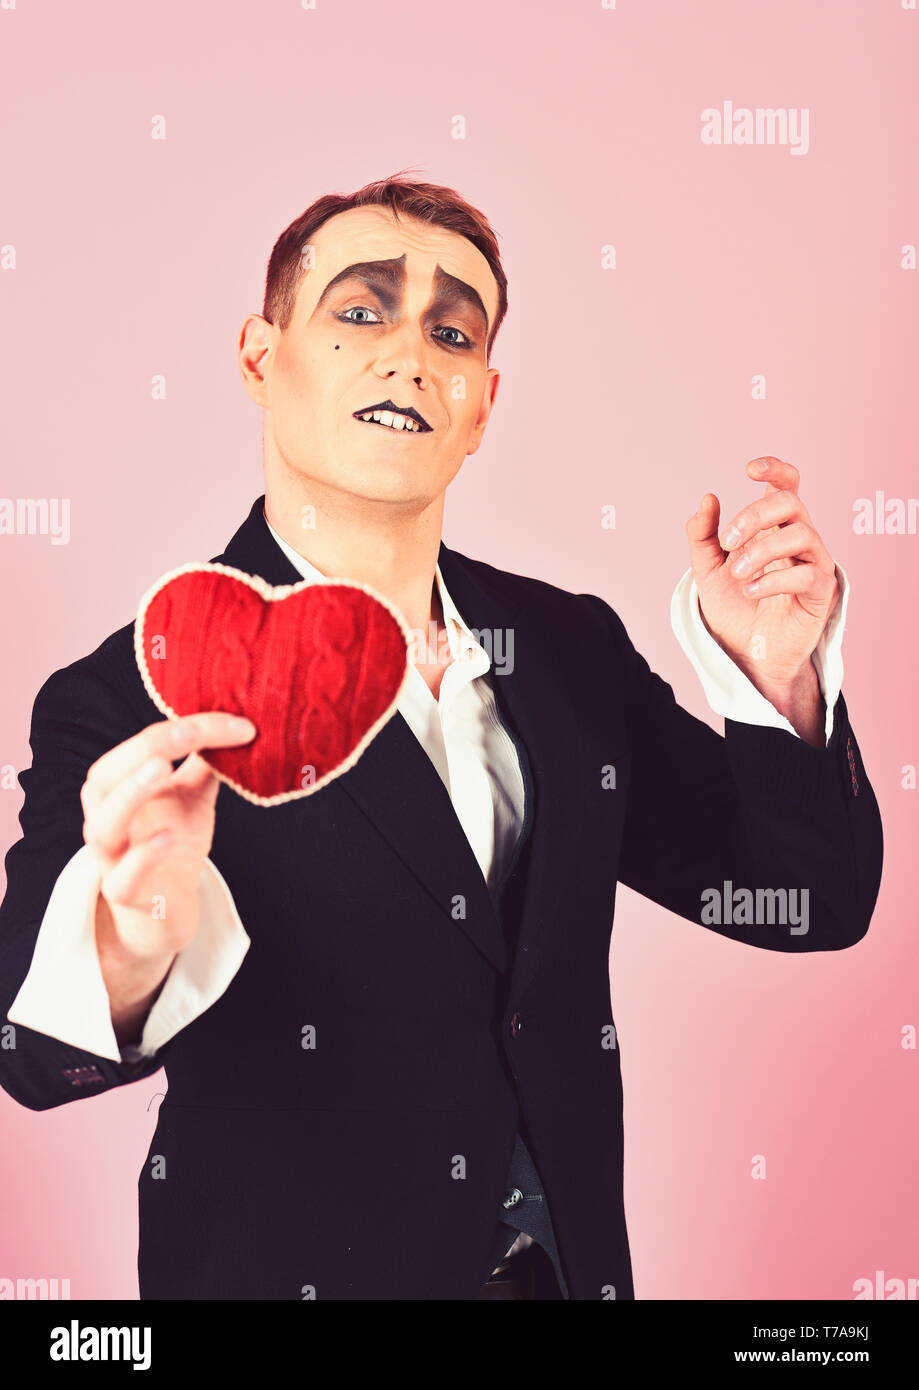 Playing love. Mime man hold red heart for valentines day. Love confession on valentines day. Mime actor with love symbol. Theatre actor pantomime - Stock Image